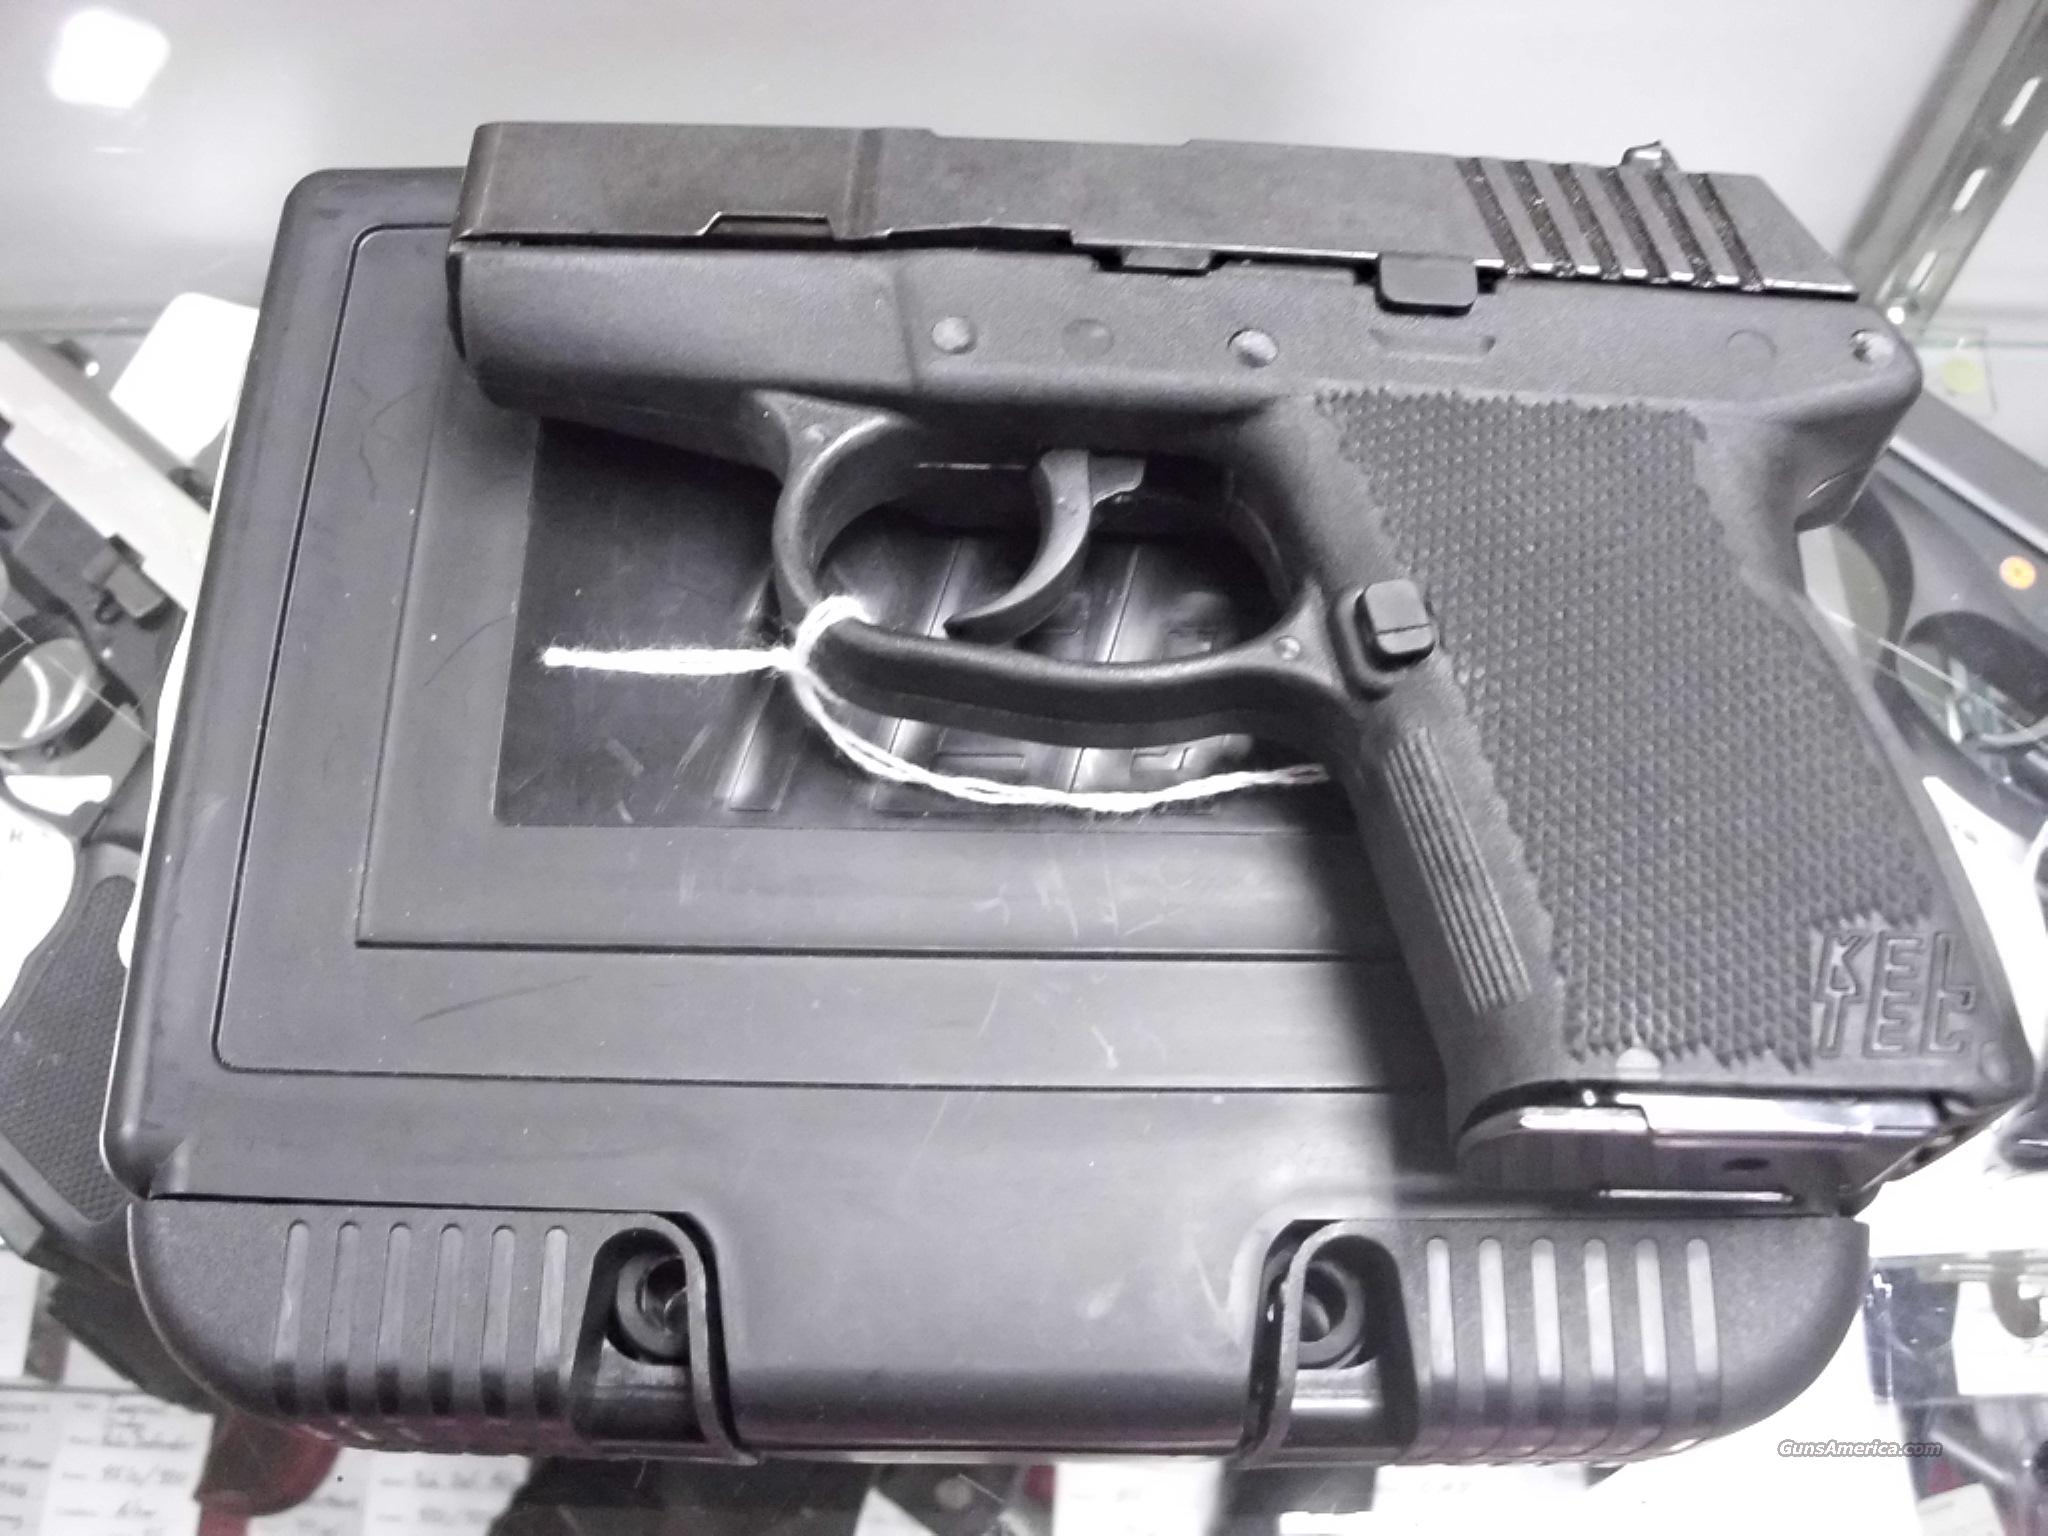 Kel-Tec P11 9mm Used   Guns > Pistols > Kel-Tec Pistols > Pocket Pistol Type